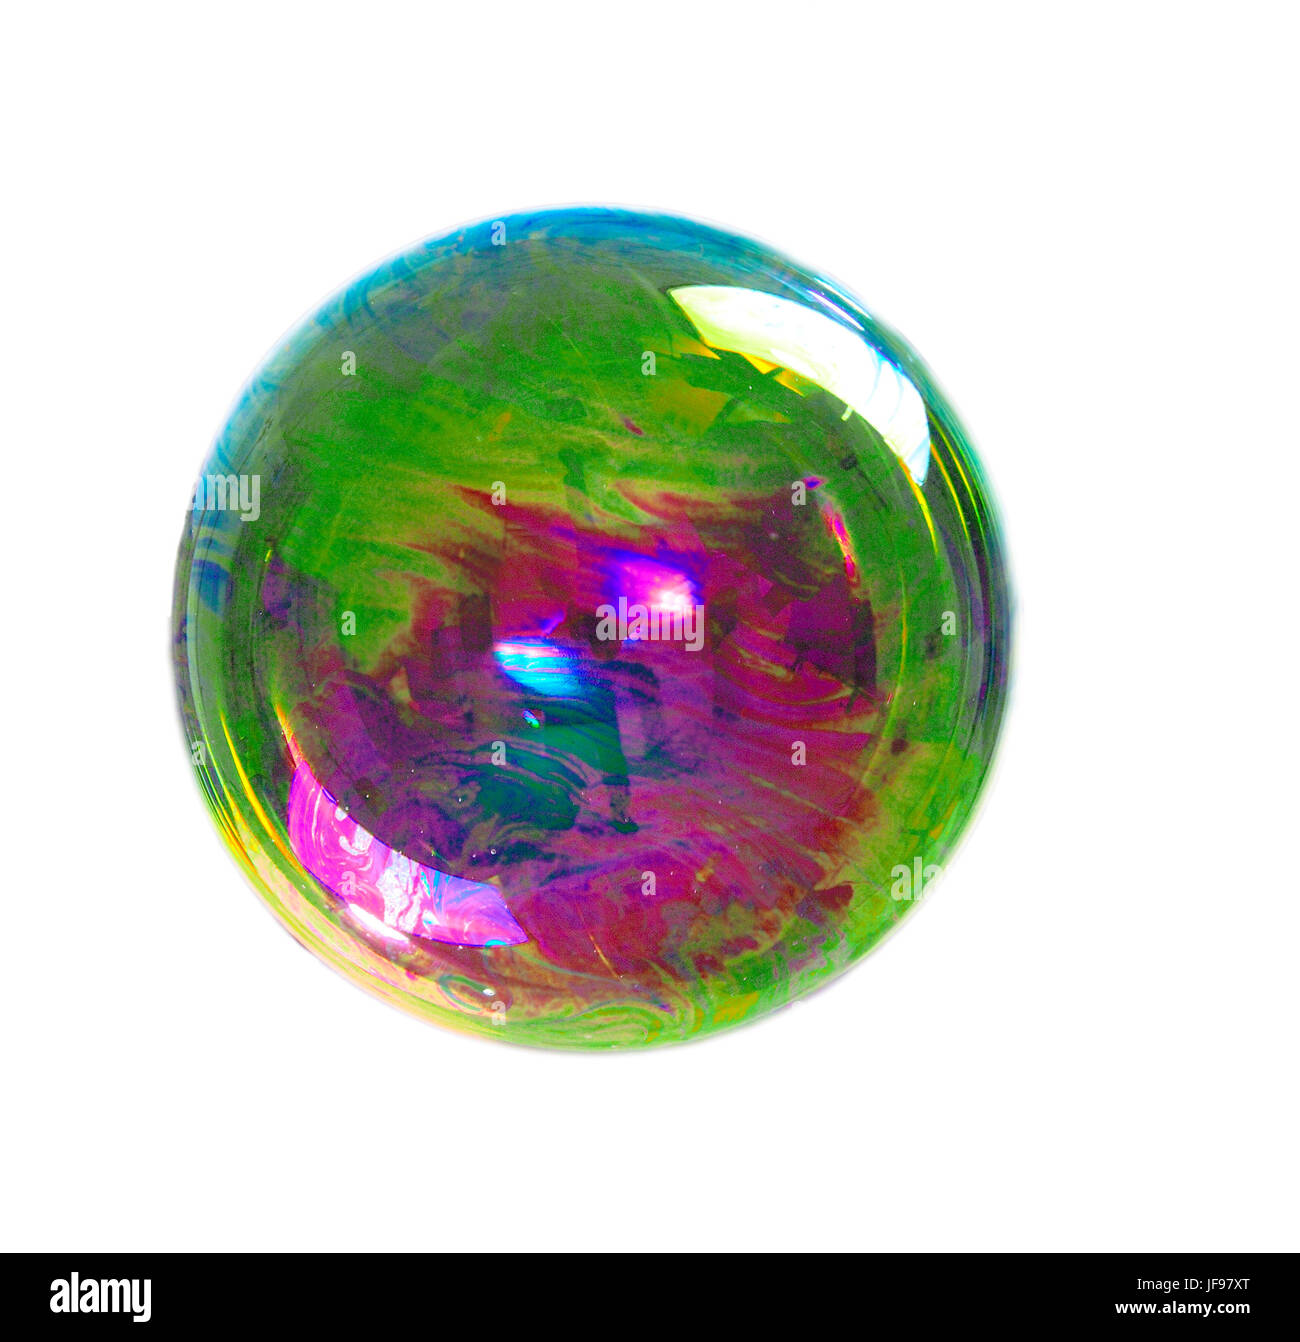 a soap bubble with many colors - Stock Image